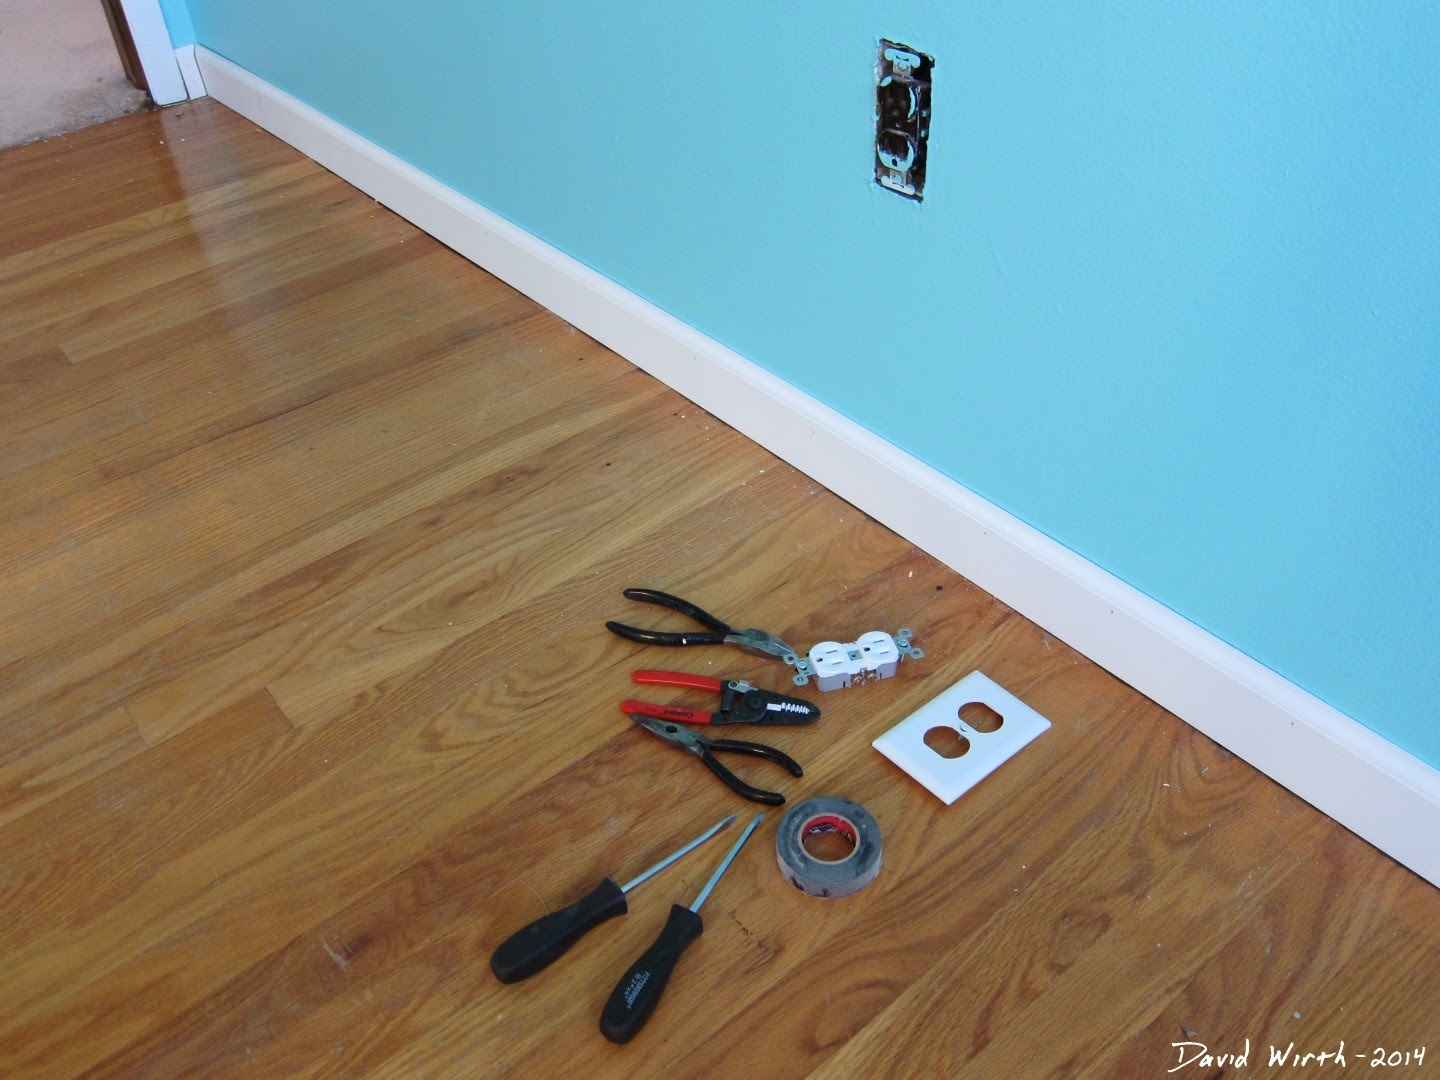 replace wall outlet, electrical outlet, cheap fix